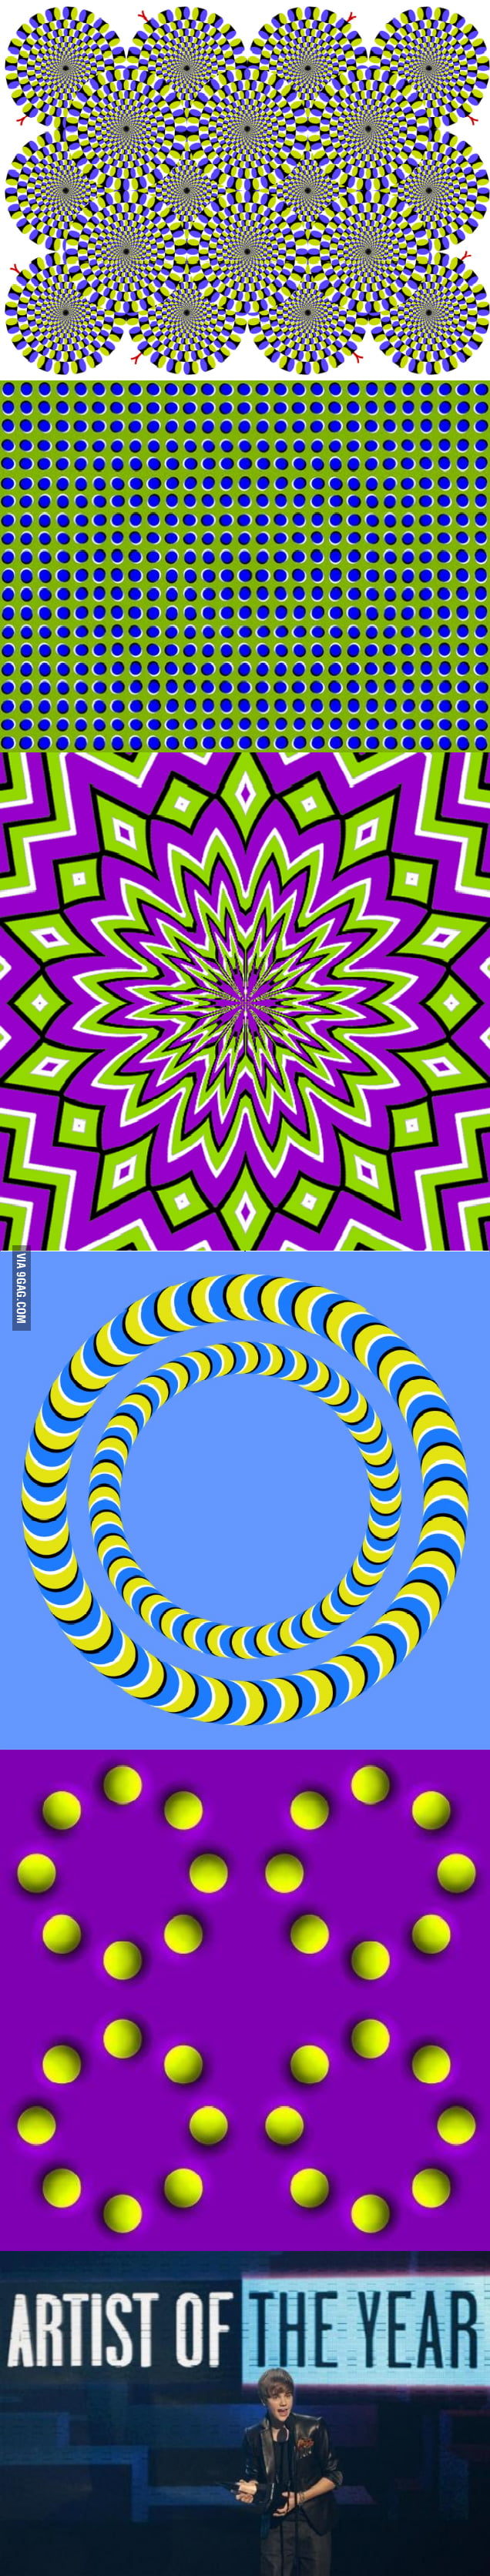 Just some Optical Illusions